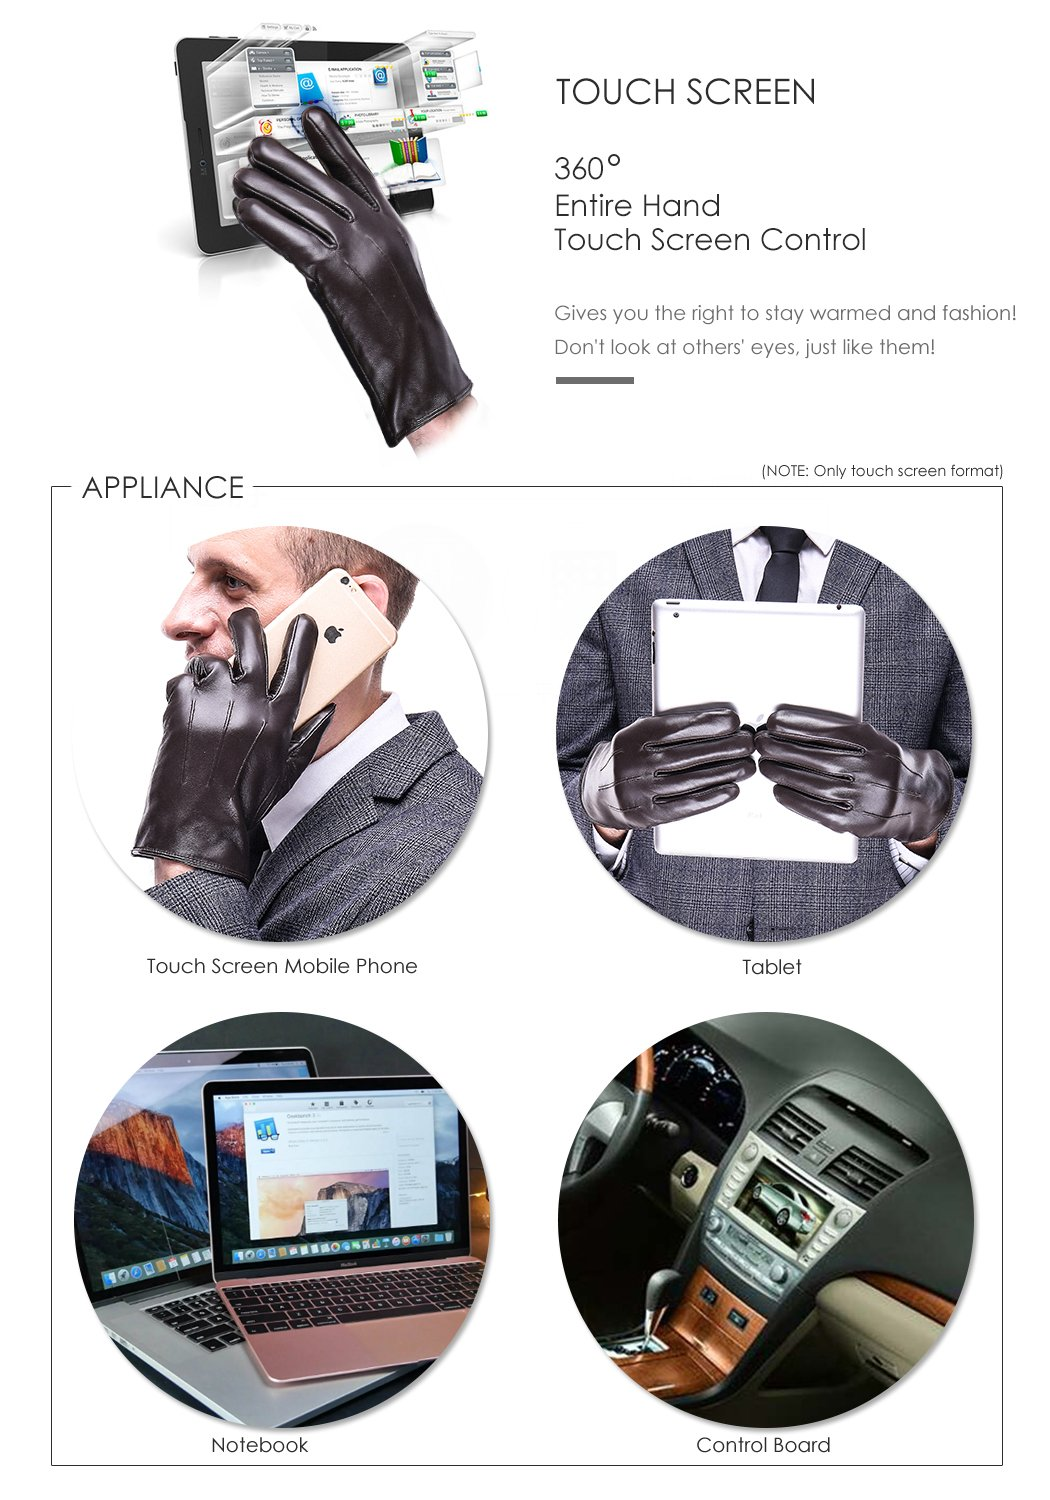 Leather Gloves for men,Anccion Best Touchscreen Winter Warm Italian Nappa Geniune Leather Gloves for Men's Texting Driving Cashmere/fleece Lining (Large, Brown) by Anccion (Image #4)